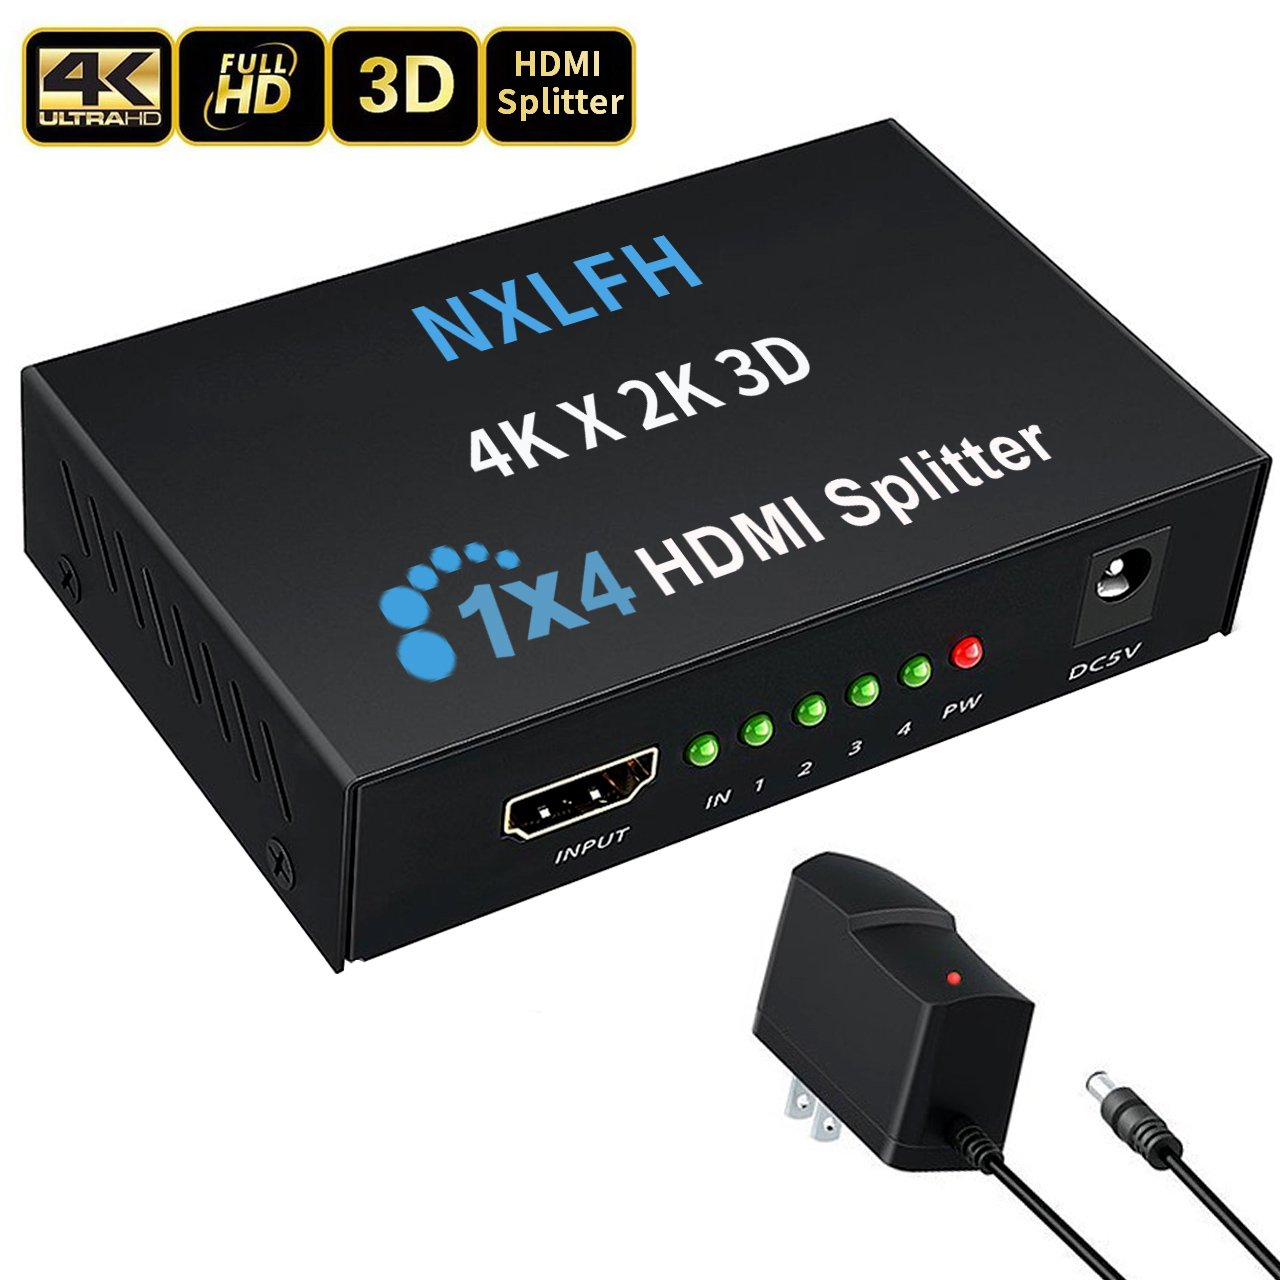 HDMI Splitter, 1 Input to 4 Outputs Hdmi Splitter Hdmi Signal Splitter 1 Port HDMI Powered Splitter Certified for Full HD 1080P &4Kx2K 3D Support[2018 Version] by NXLFH